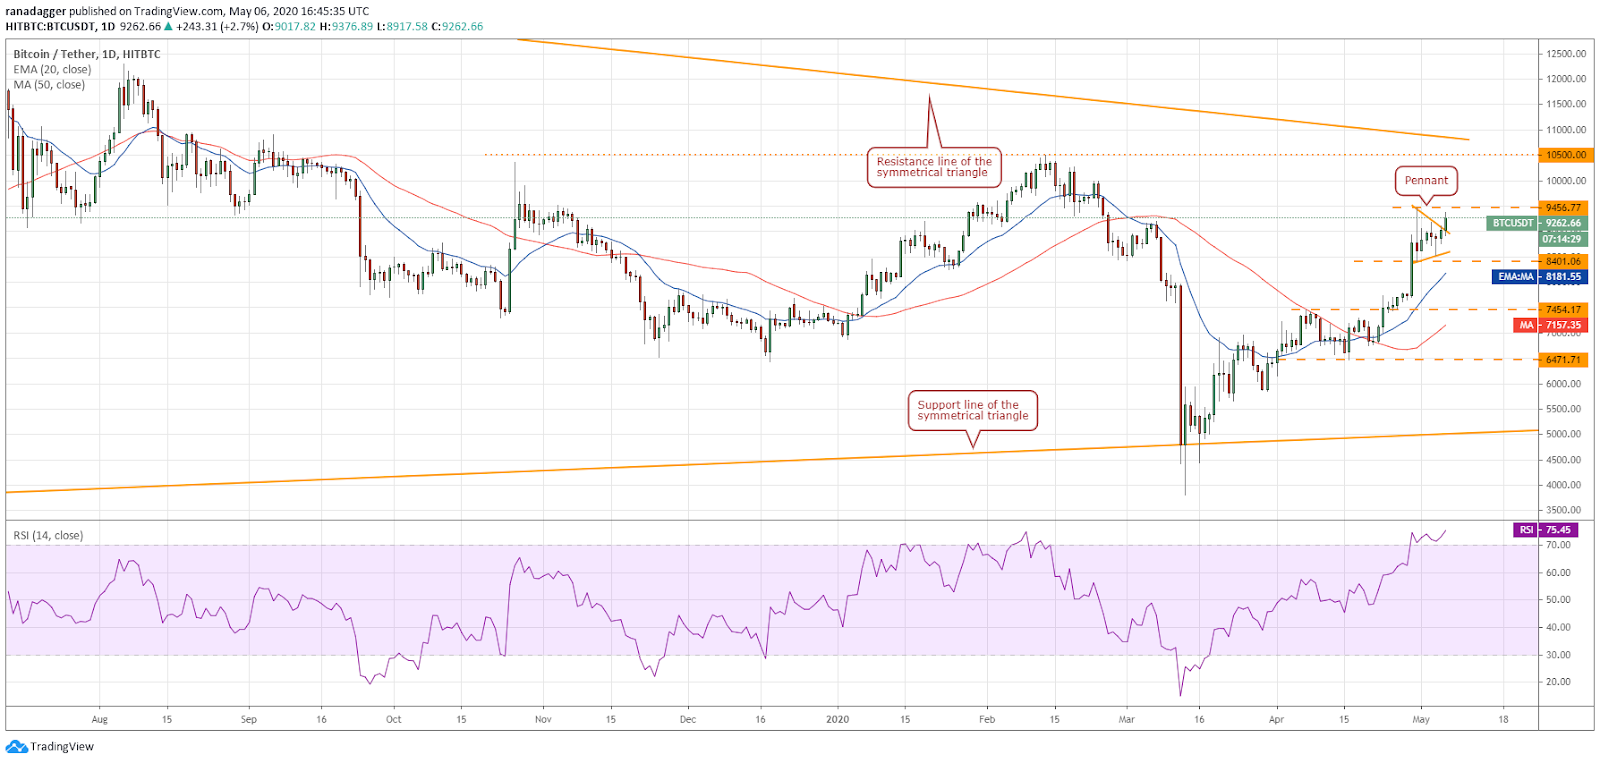 BTC–USD daily chart. Source: Tradingview